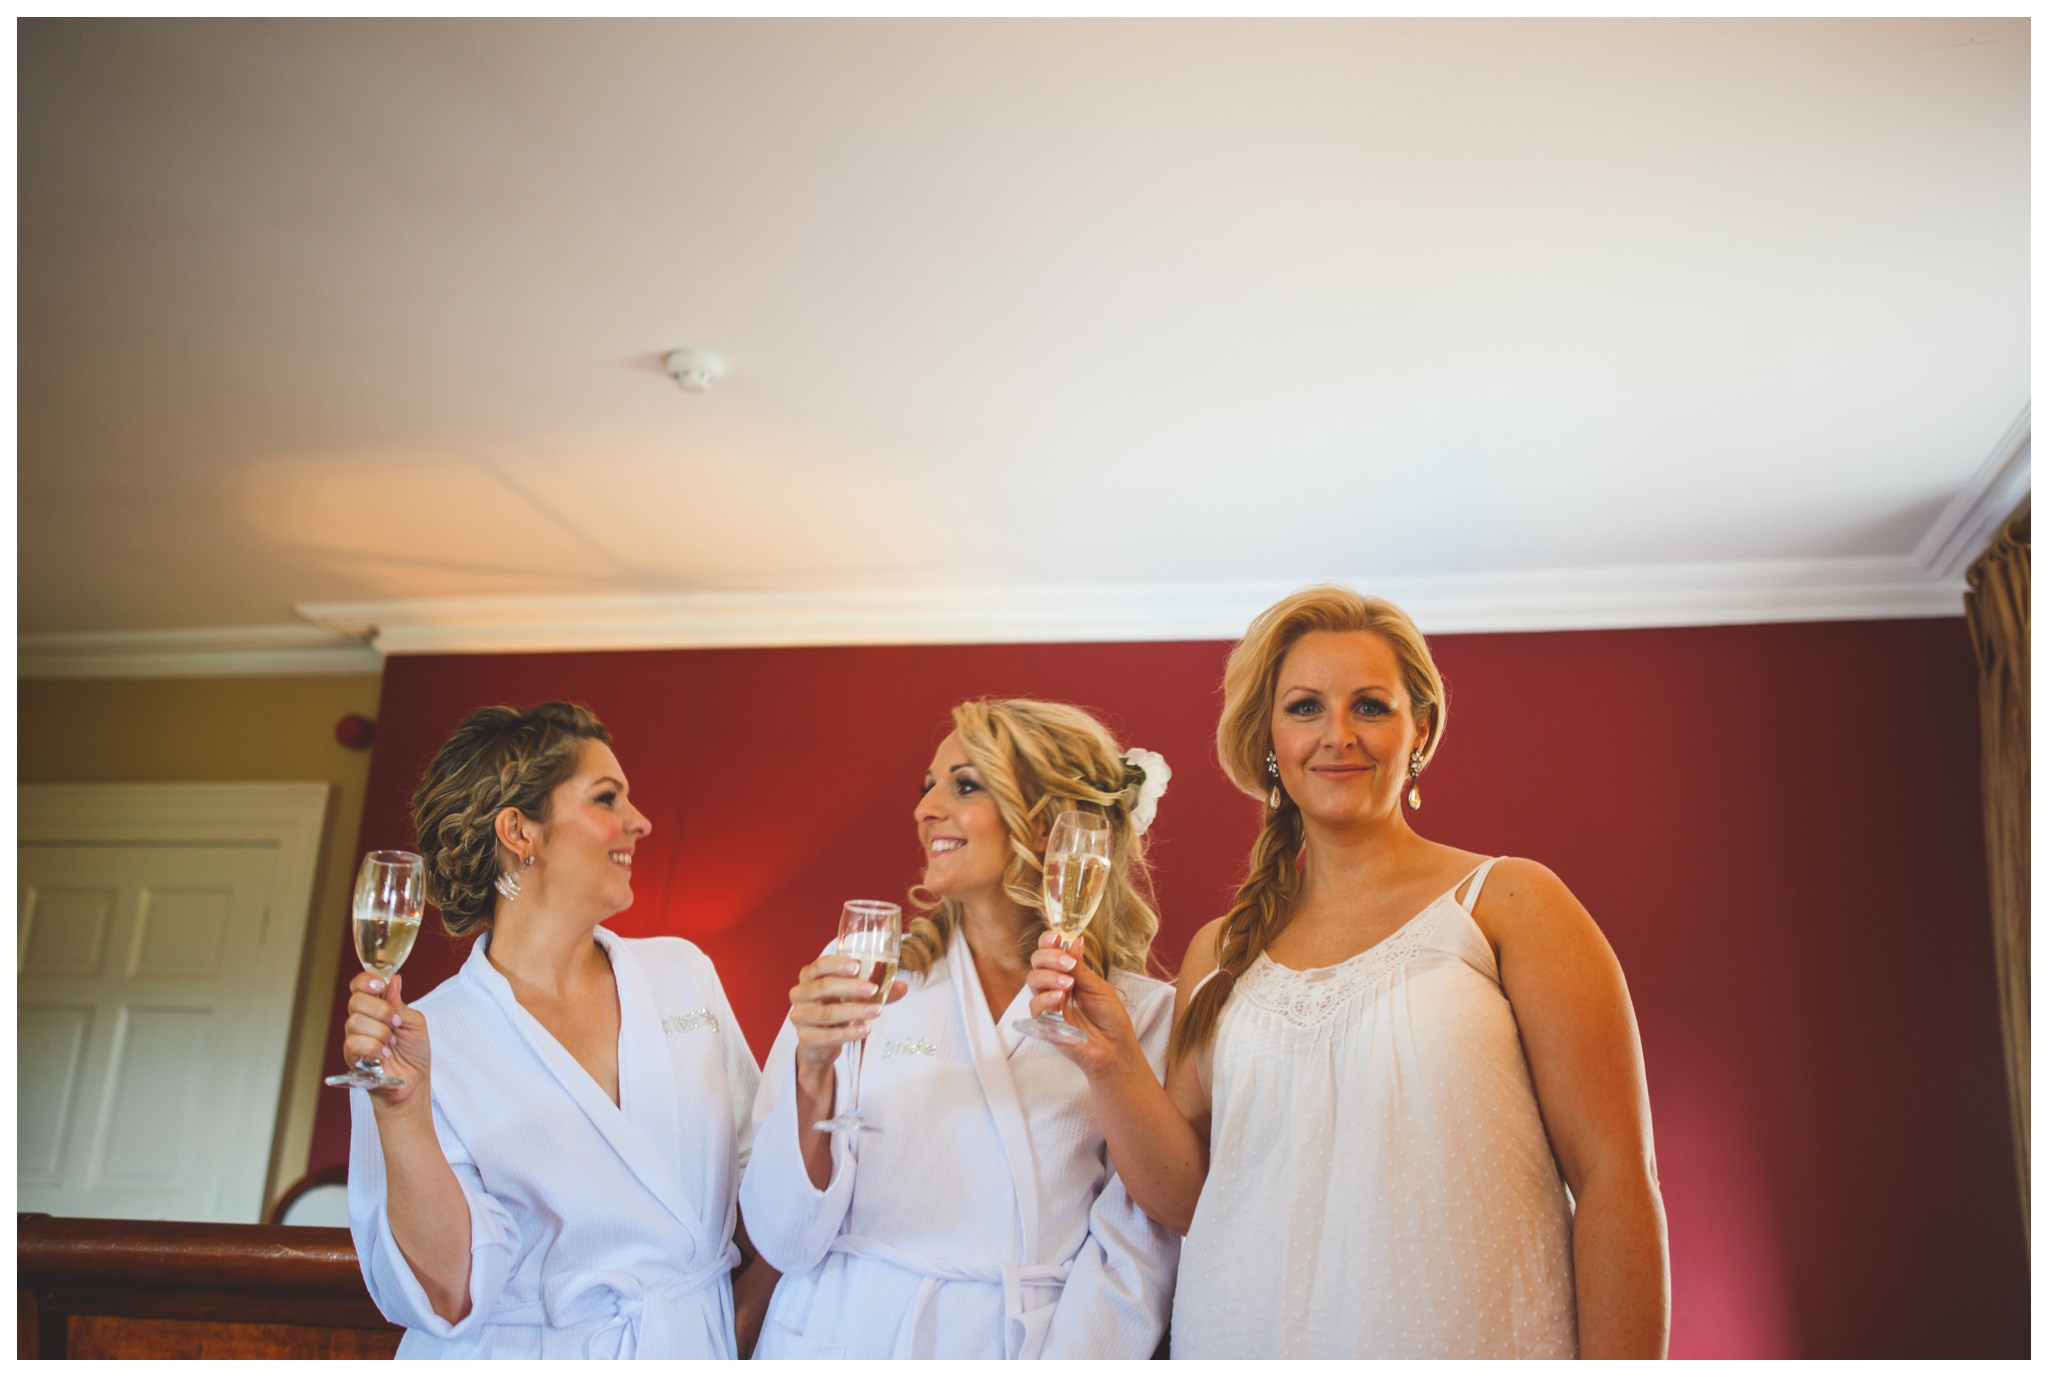 Richard Savage Photography - Wedding - Peterstone Court Brecon - 2016-05-11_0008